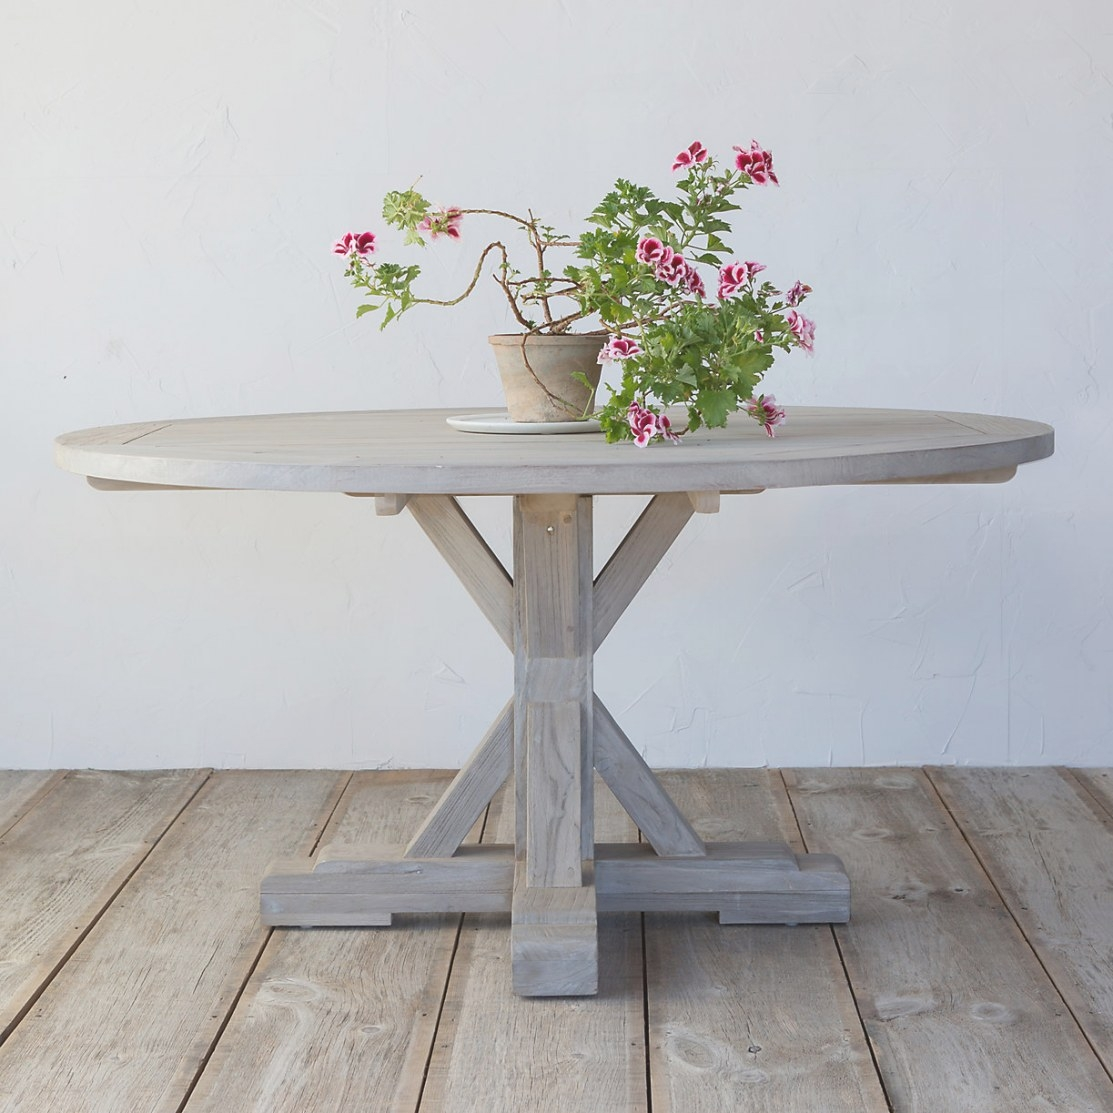 10 Easy Pieces: Round Wood Outdoor Dining Tables: Gardenista with Round Wood Dining Table